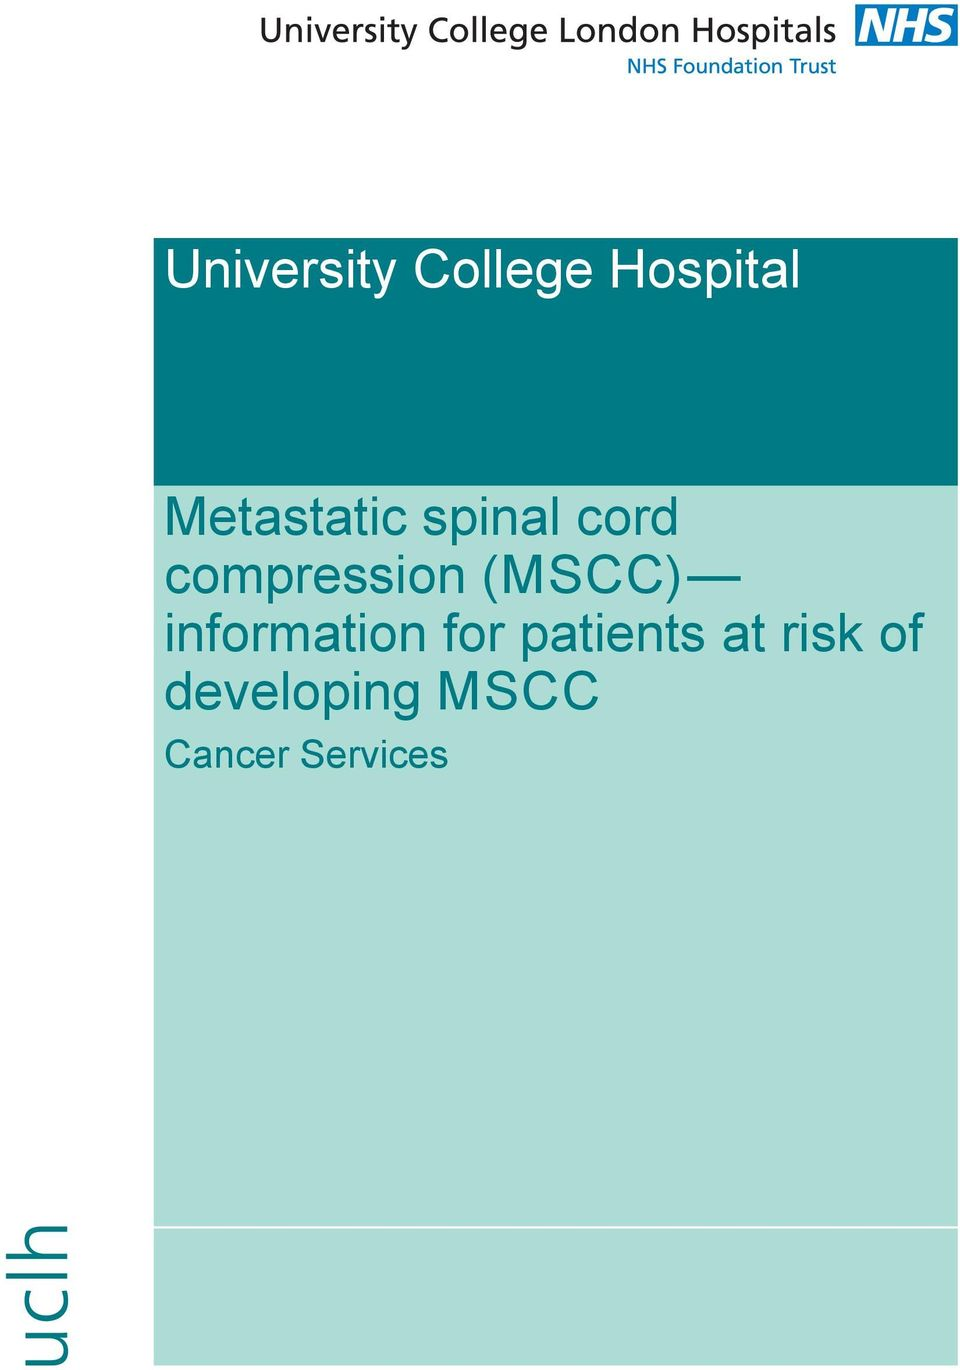 (MSCC) information for patients at